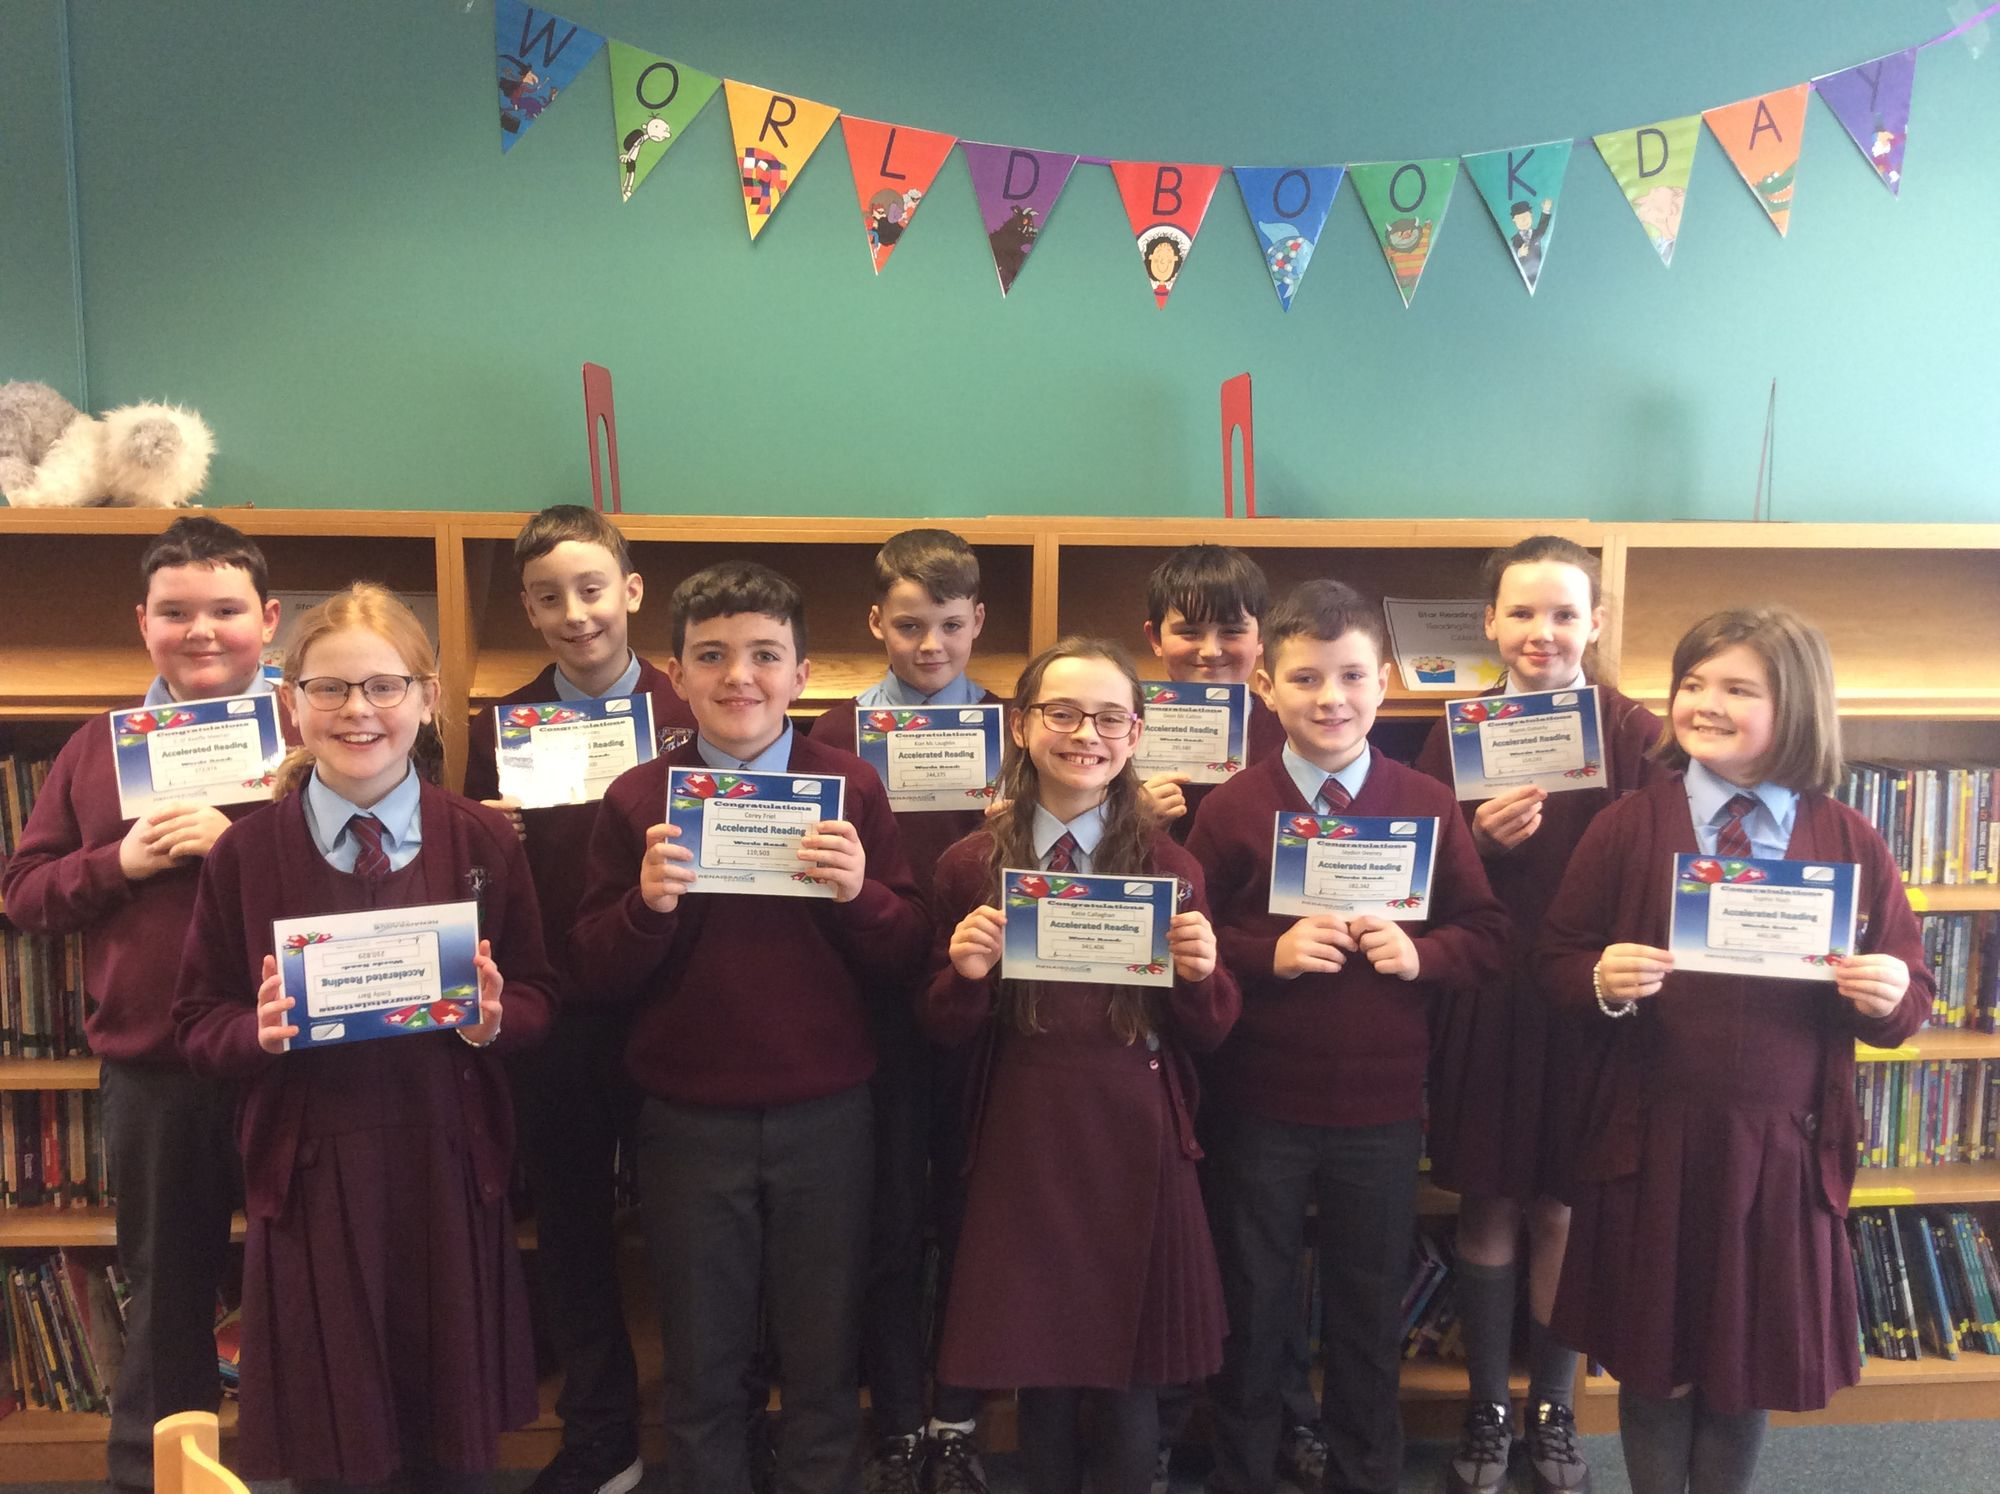 Celebrating Accelerated Reading millionaires on World Book Day